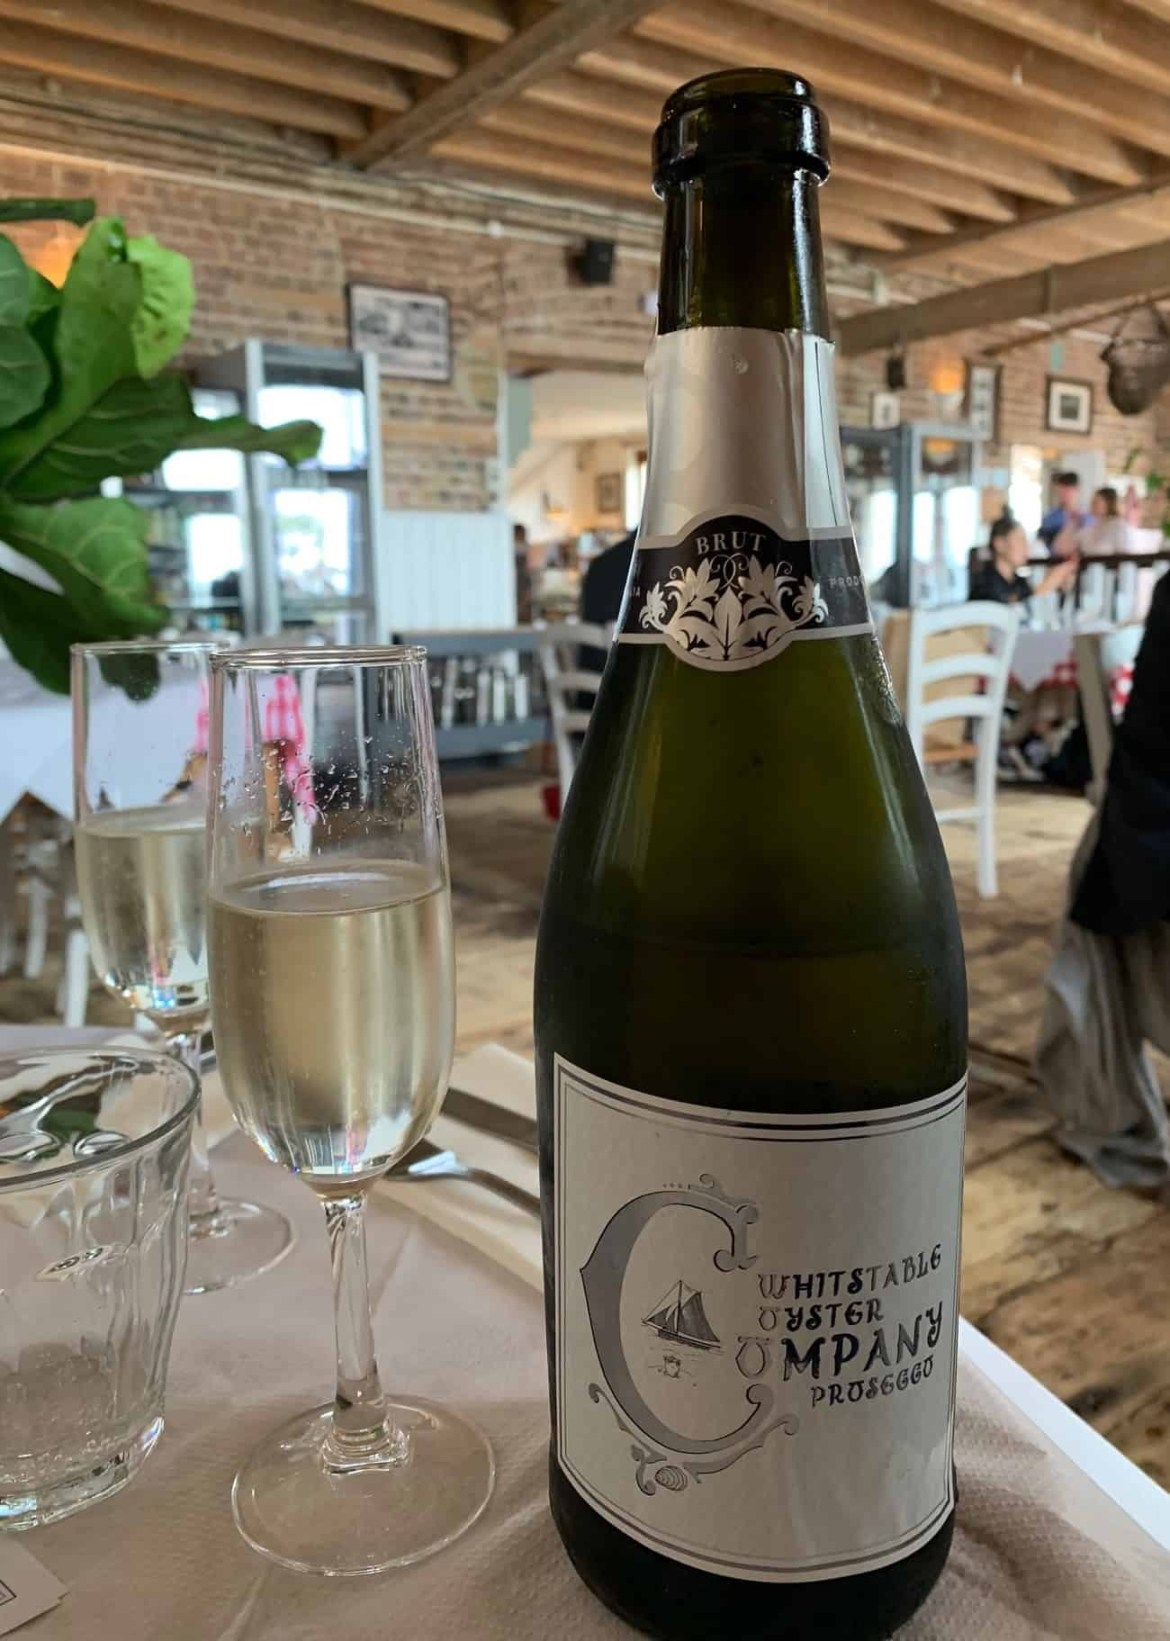 Bottle of branded Prosecco at Whitstable Oyster Company